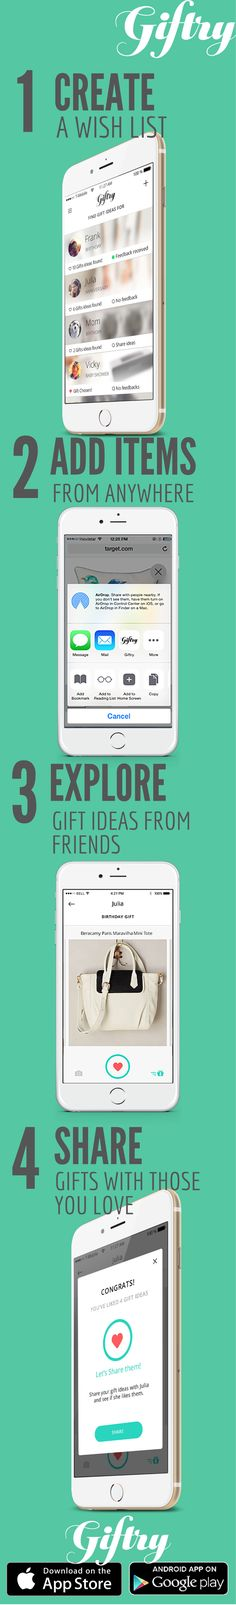 How to never give a bad gift again in 4 easy steps using the free Giftry app!